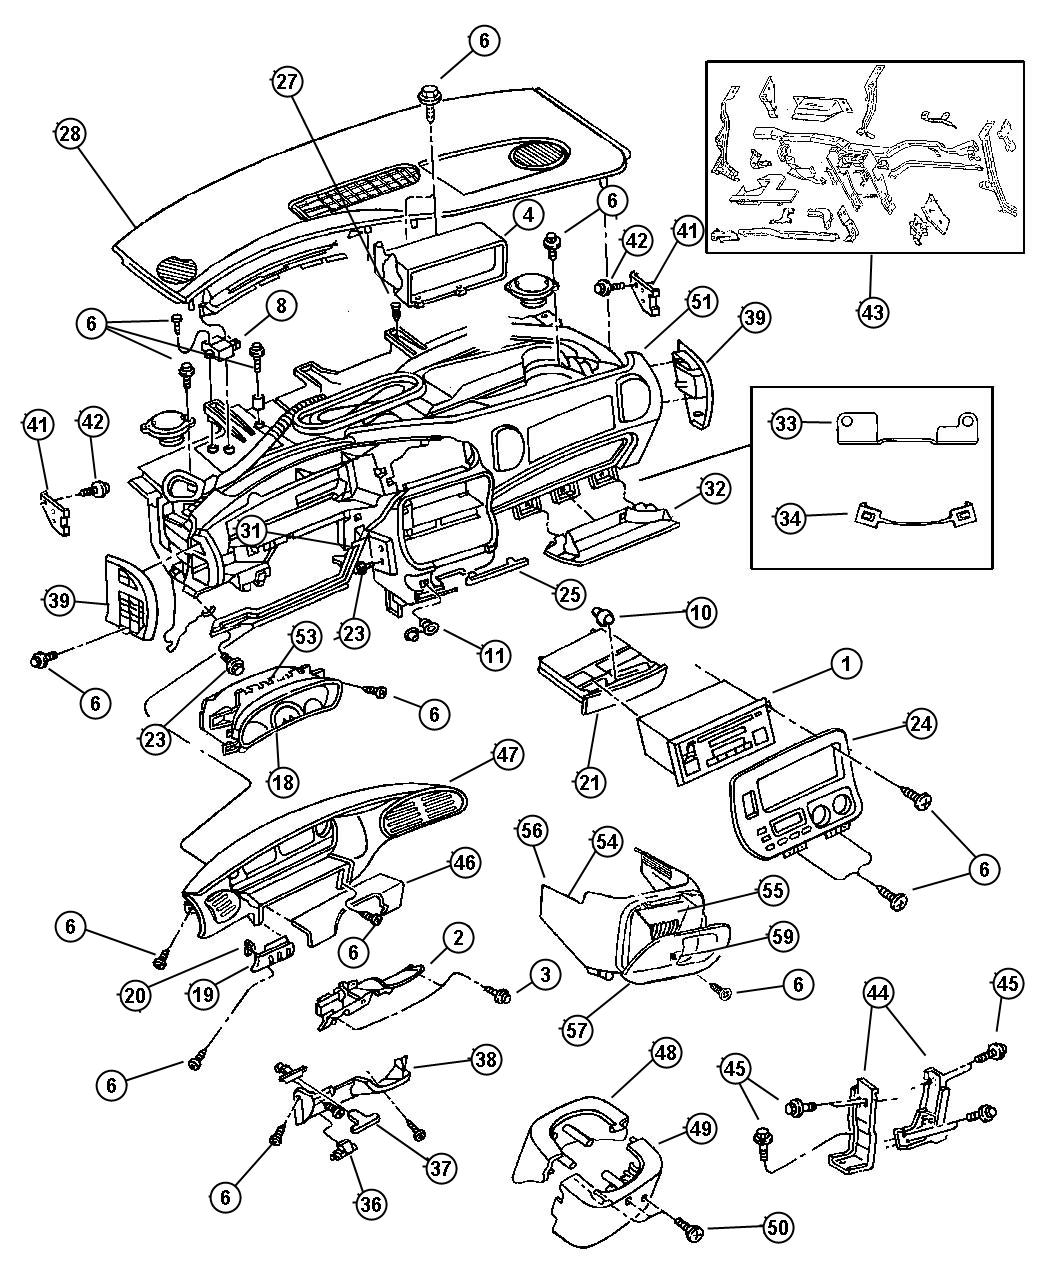 Chrysler Voyager Wiring Diagram 1997 Circuit Schematic Wet Jet Plymouth Engine Another Blog About U2022 1998